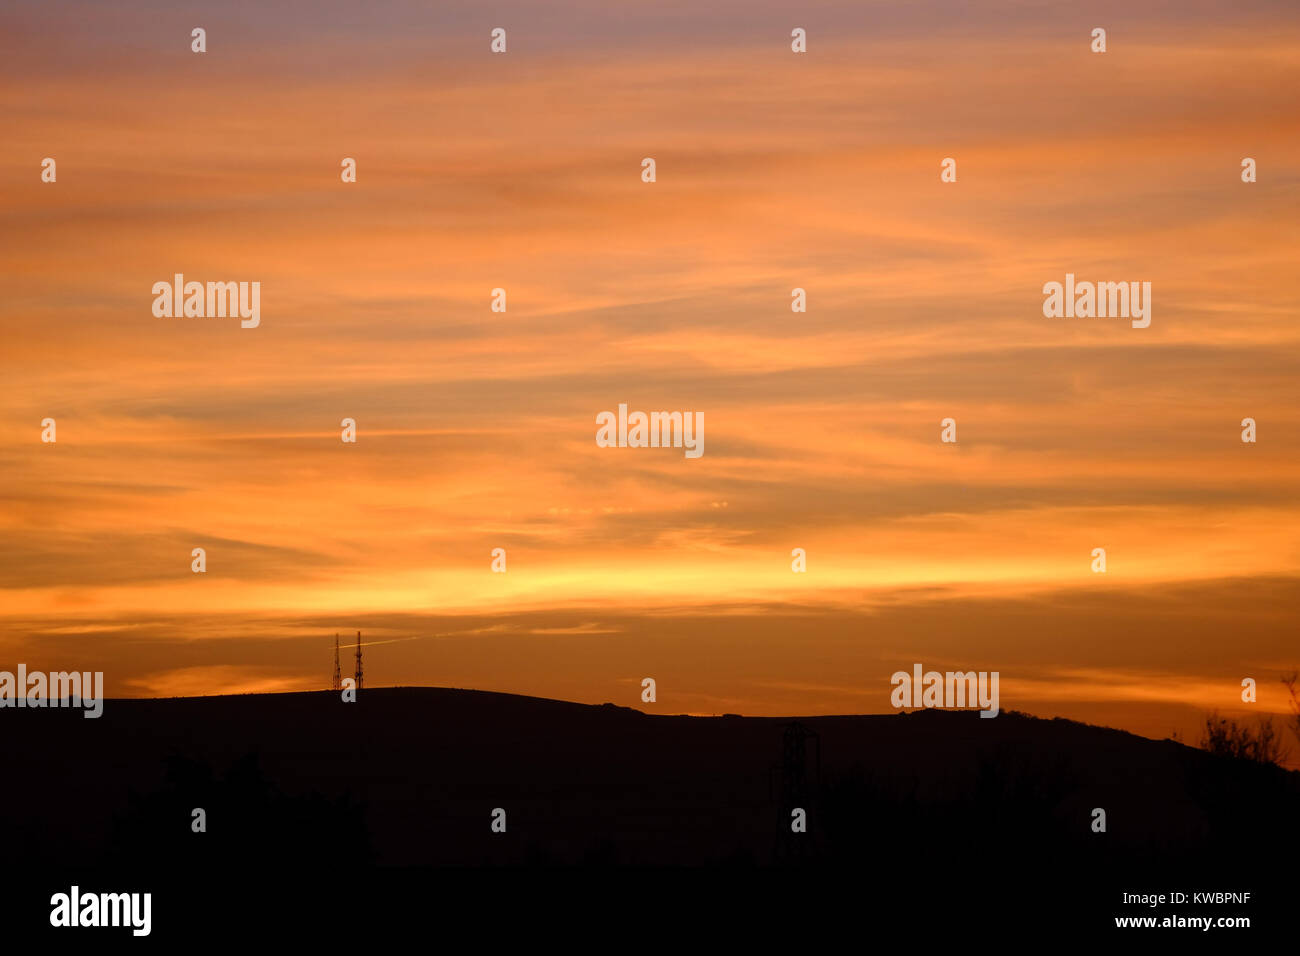 Radio masts on the south downs near Firle, East Sussex, at sunset. - Stock Image